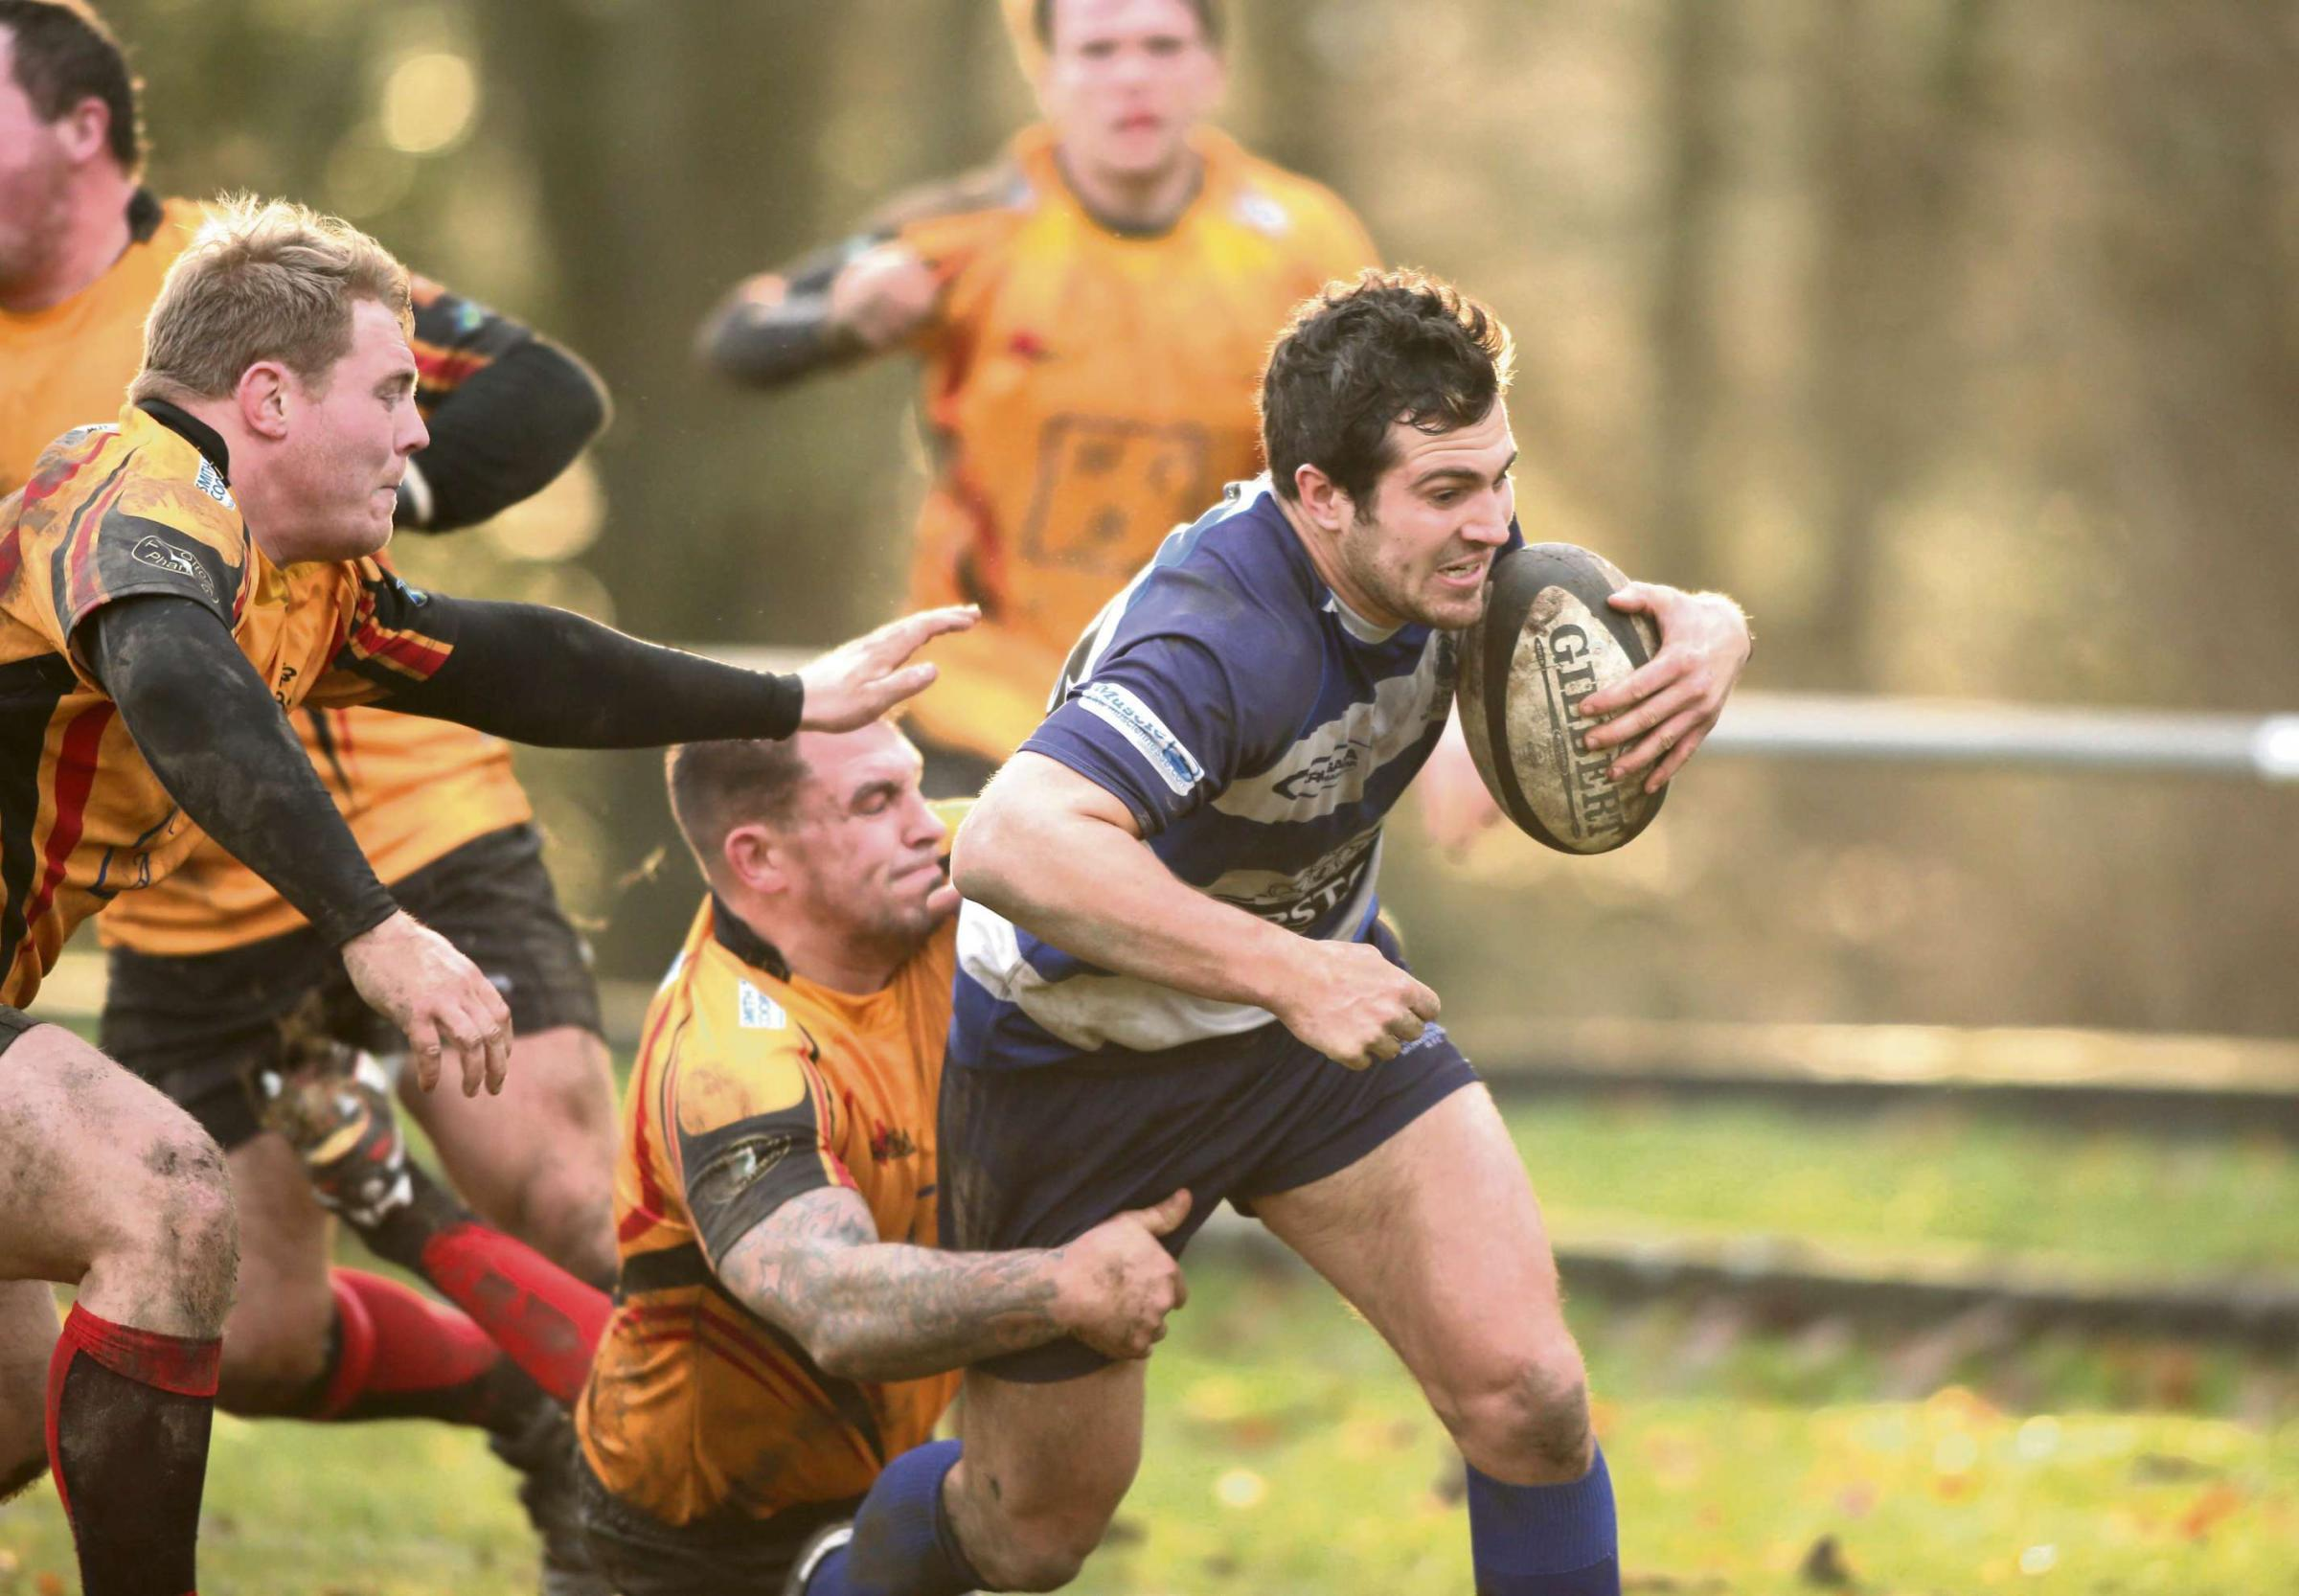 KEY PLAYER: Cameron Mitchell, who scored two tries in Durham's win on Saturday